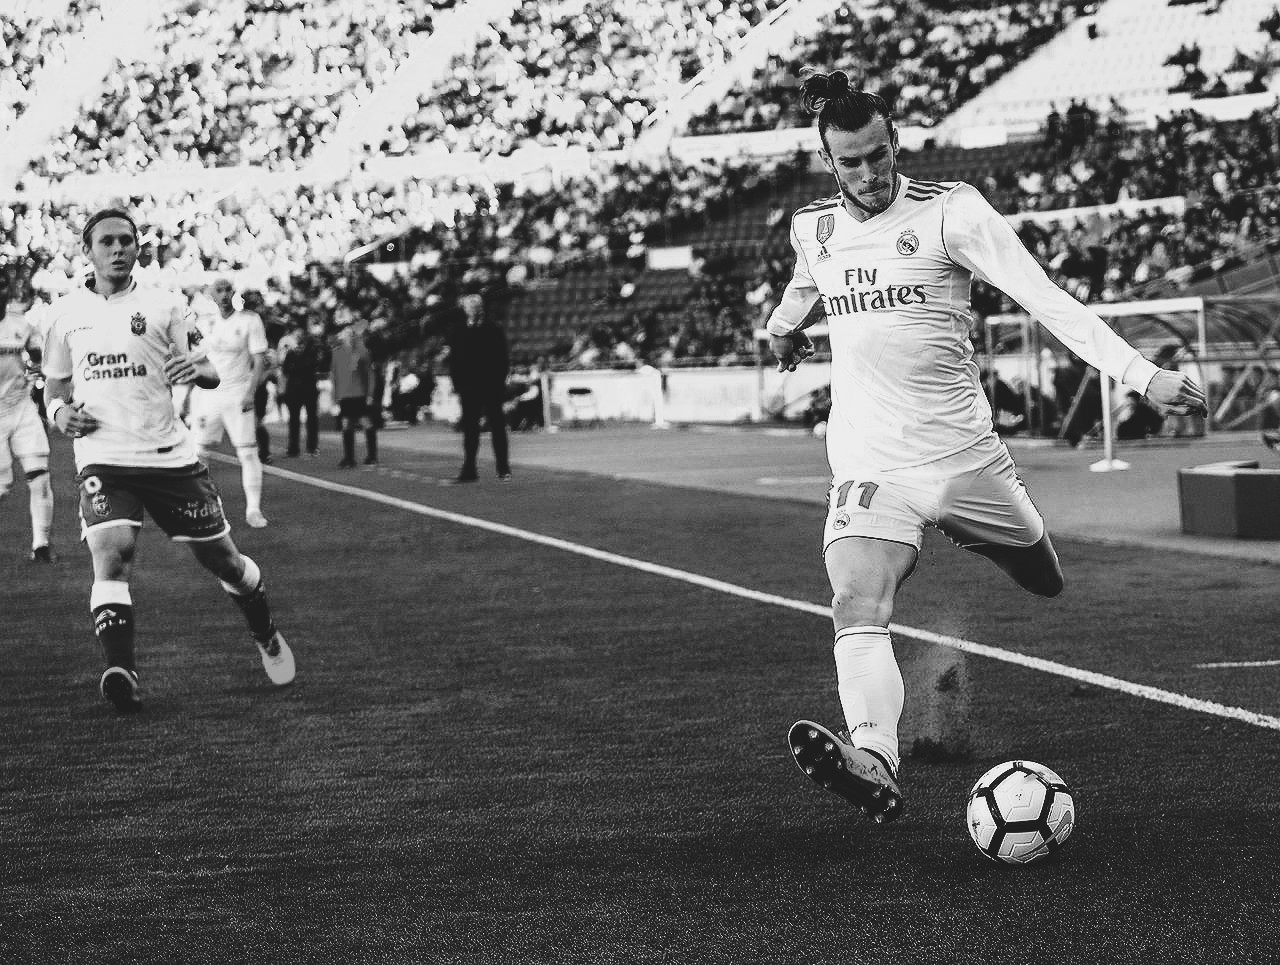 Gareth Bale crosses a ball for Real Madrid in La Liga